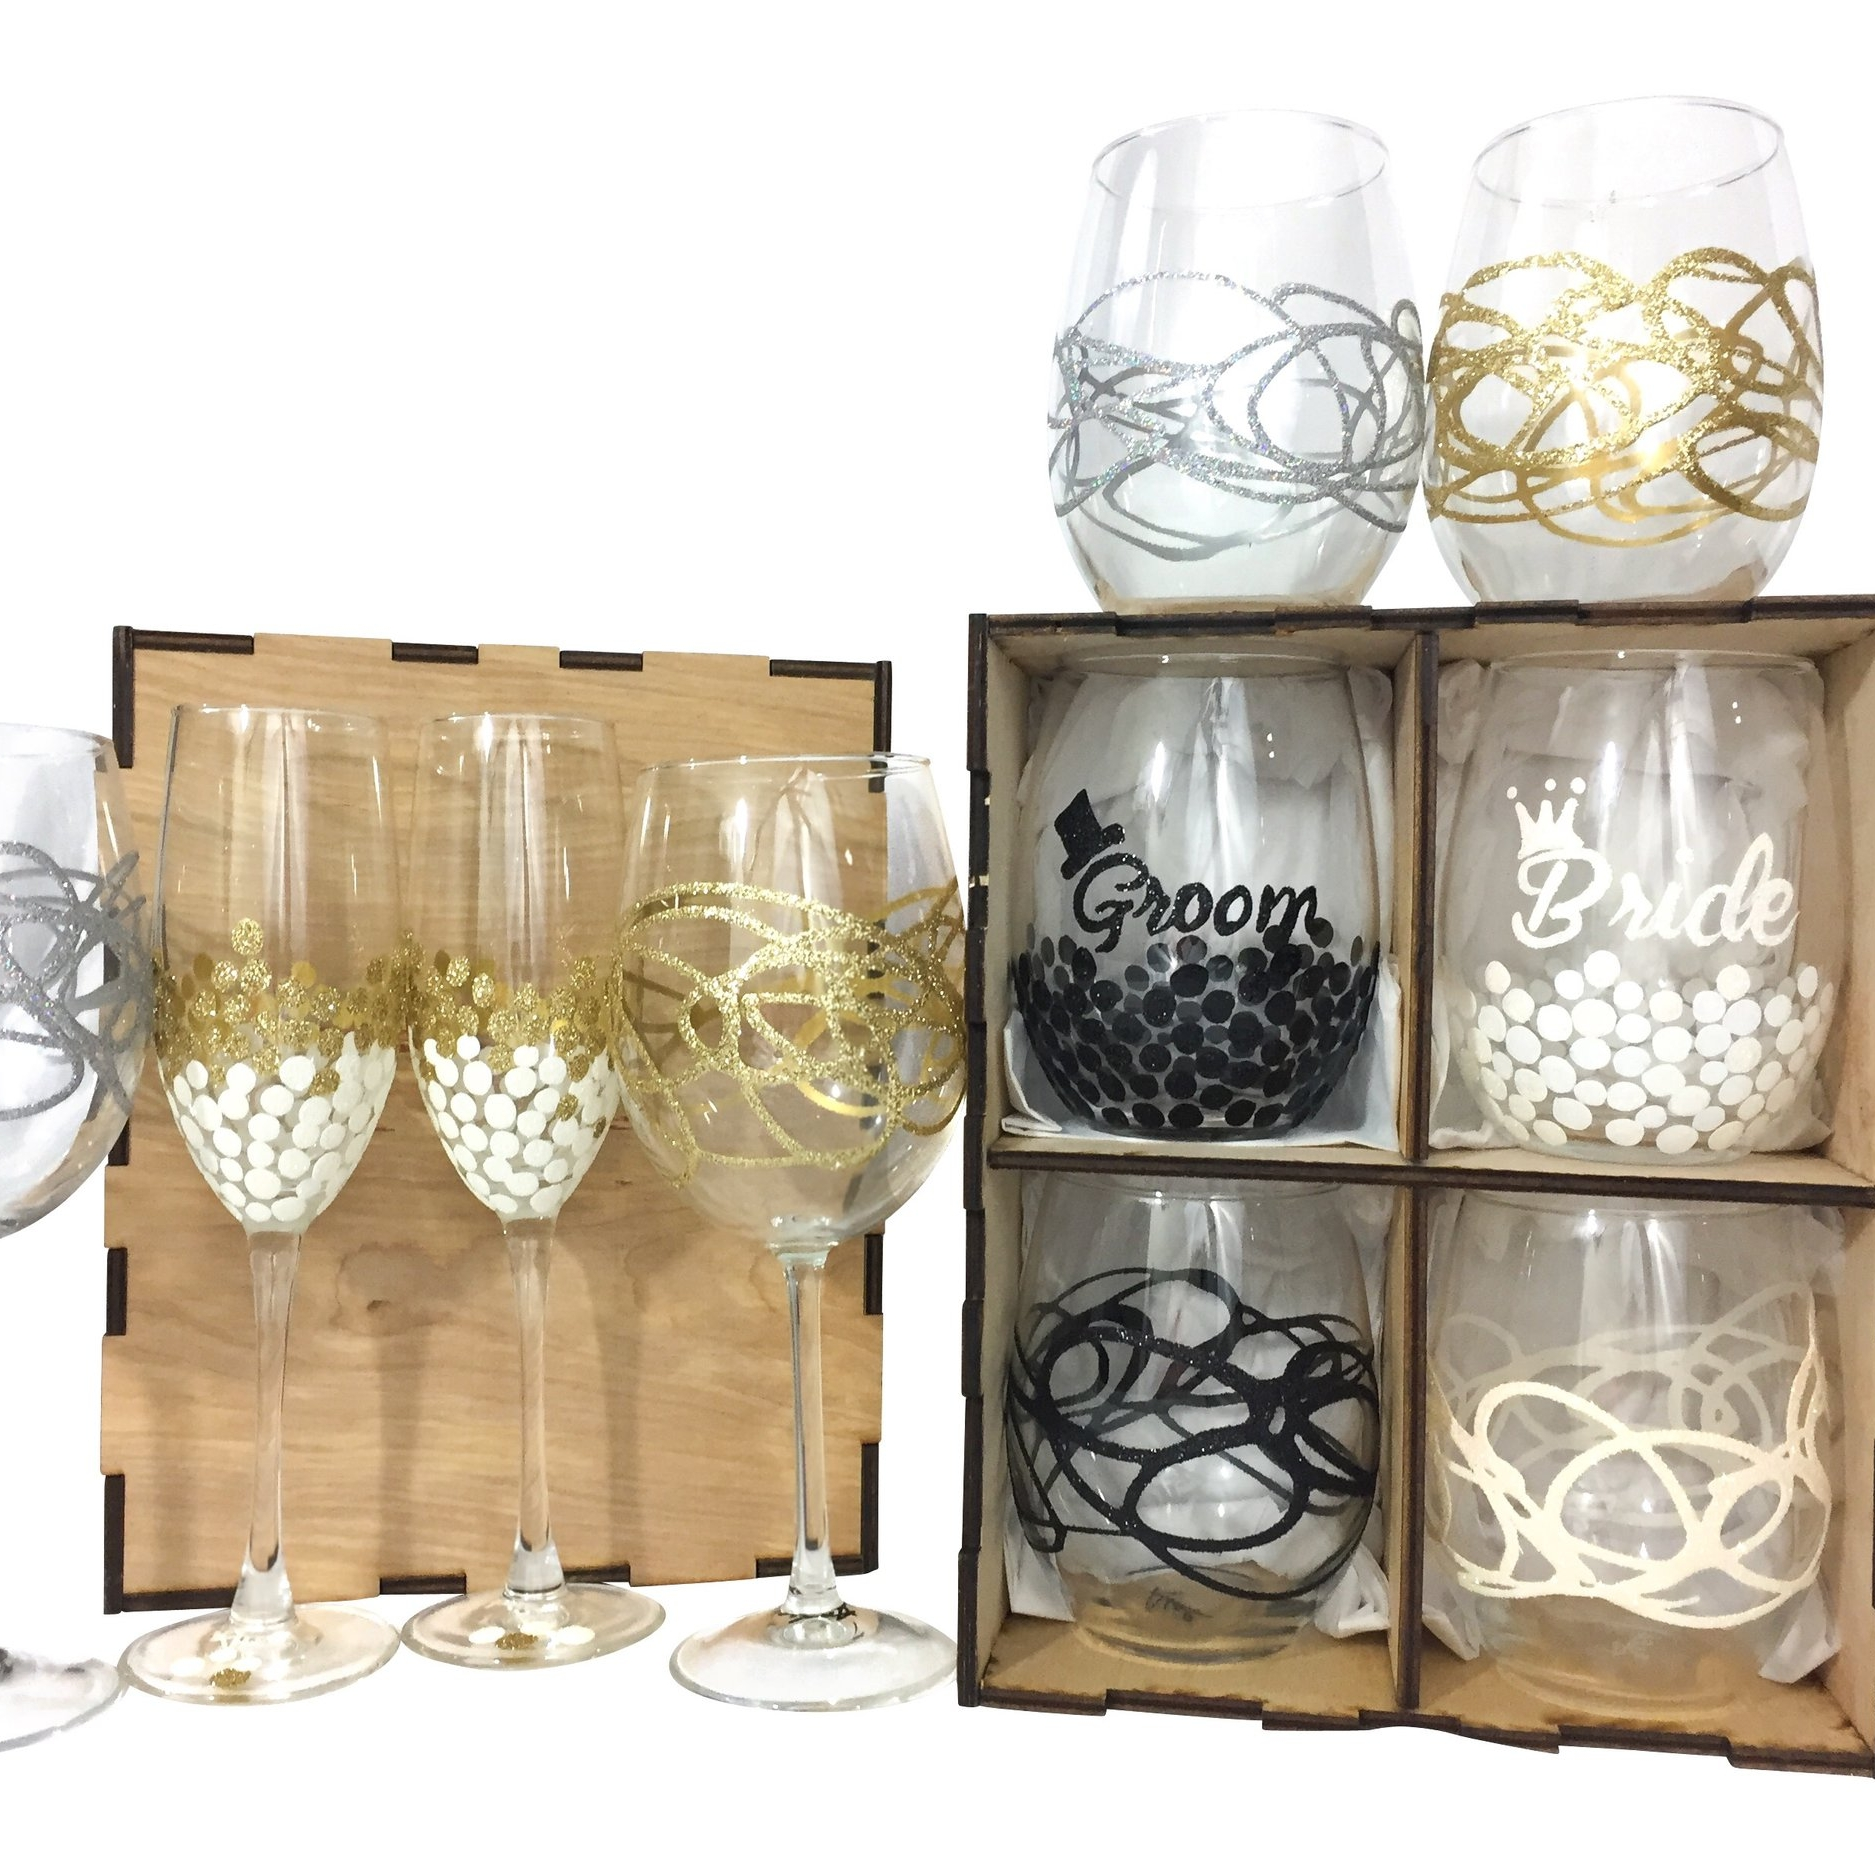 Celebration Collection - Celebrate in style no matter what occasion!